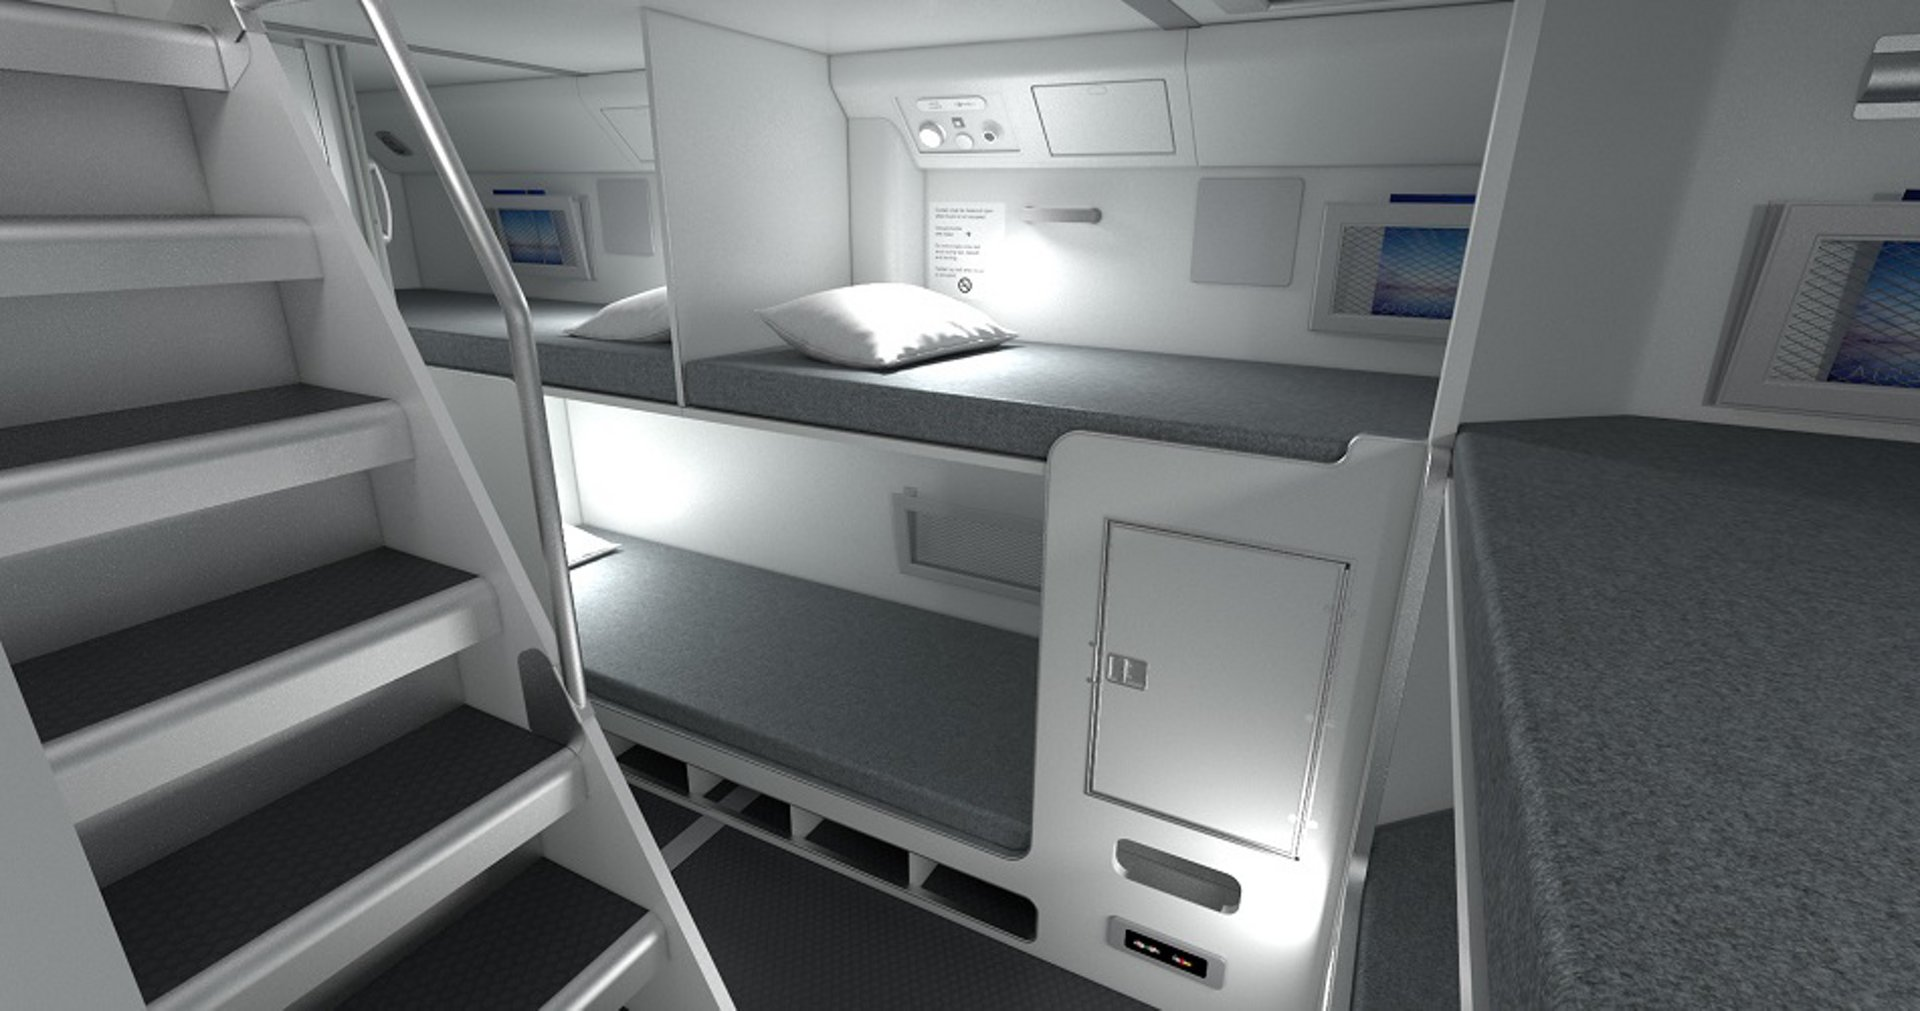 Airbus proposes a more ergonomic and comfortable interior for cabin and flight crew optimising cabin space.